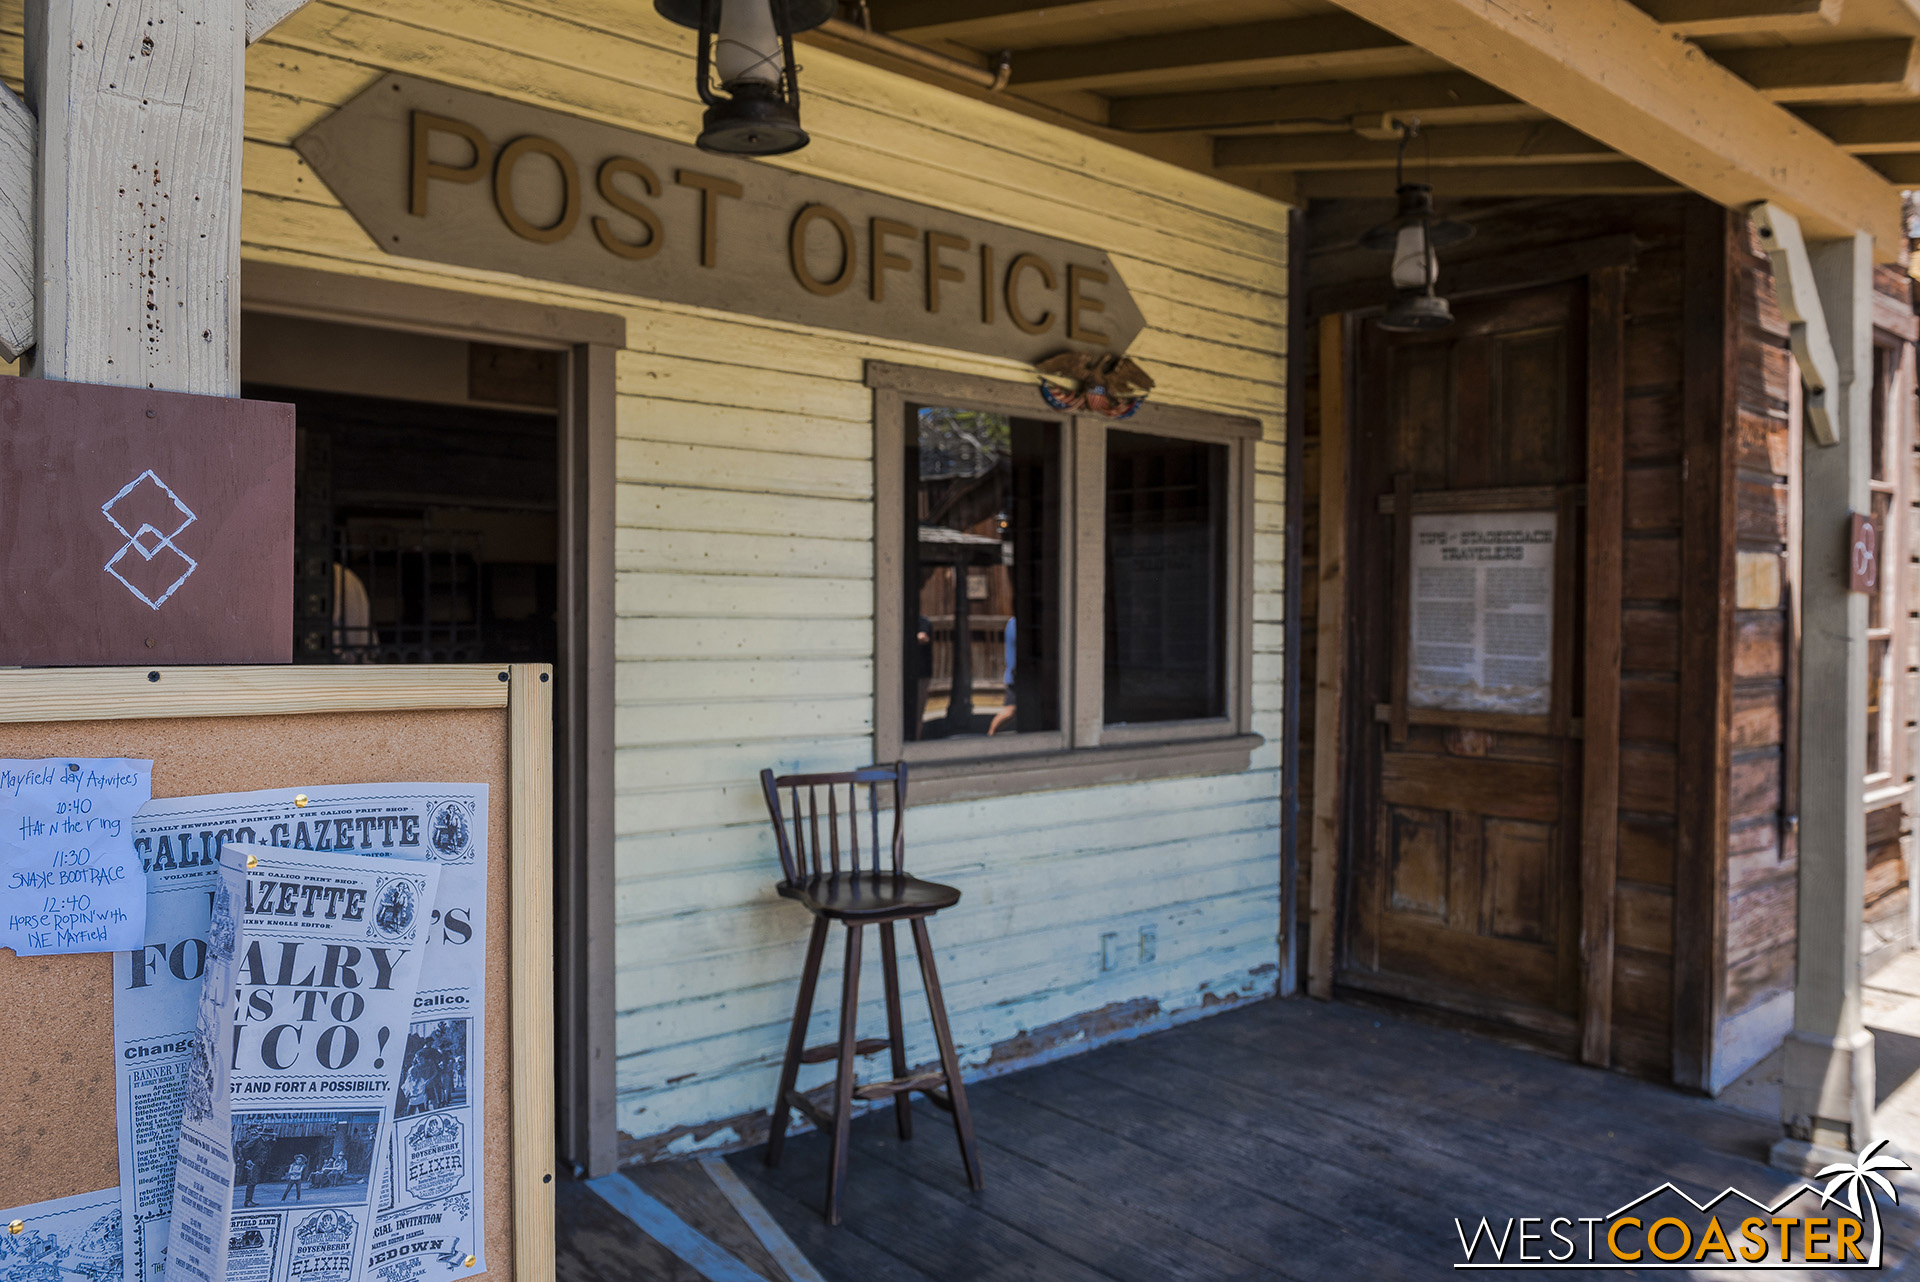 The Post Office is a popular hangout for local townspeople.